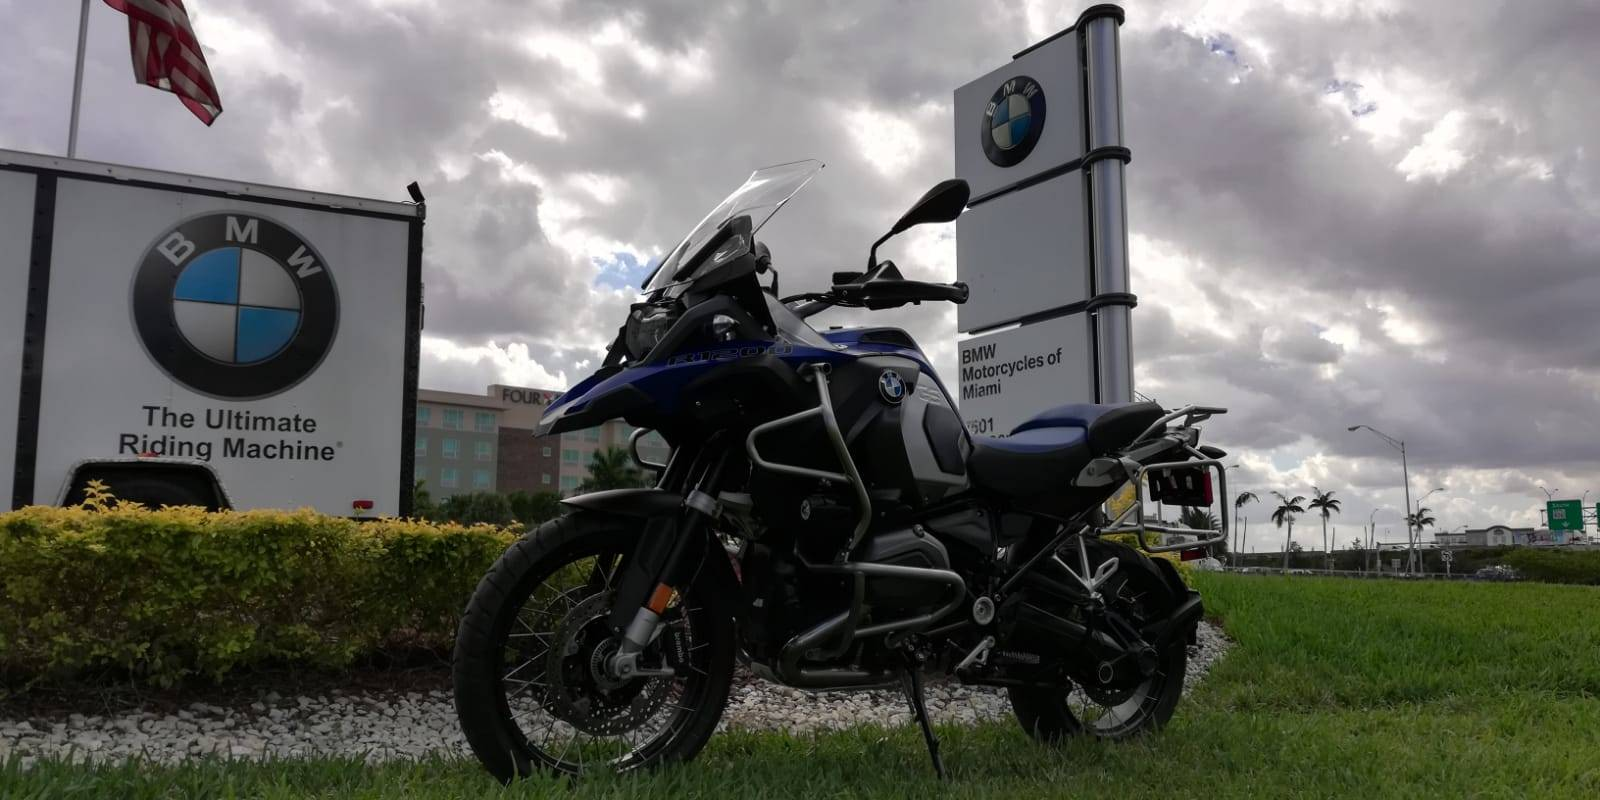 Used 2015 BMW R 1200 GSA for sale, BMW R 1200GSA for sale, BMW Motorcycle R1200GSA, used BMW Adventure, Dual, GS, BMW. BMW Motorcycles of Miami, Motorcycles of Miami, Motorcycles Miami, New Motorcycles, Used Motorcycles, pre-owned. #BMWMotorcyclesOfMiami #MotorcyclesOfMiami. - Photo 5